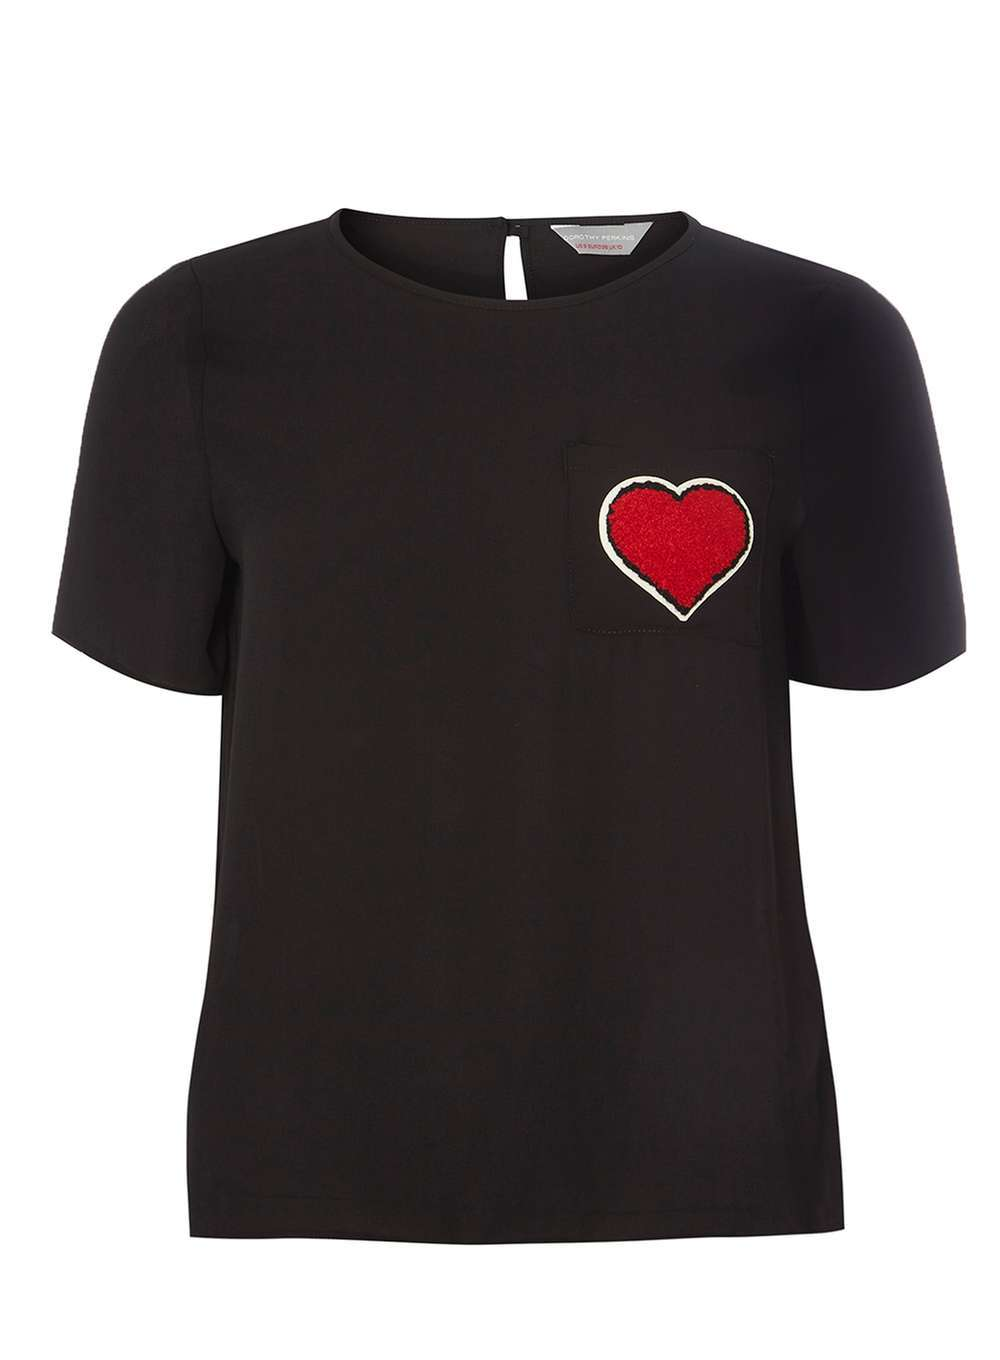 Womens Petite Heart Pocket Tee Black - pattern: plain; style: t-shirt; predominant colour: black; occasions: casual; length: standard; fibres: polyester/polyamide - 100%; fit: body skimming; neckline: crew; sleeve length: short sleeve; sleeve style: standard; pattern type: fabric; texture group: jersey - stretchy/drapey; wardrobe: basic; season: a/w 2016